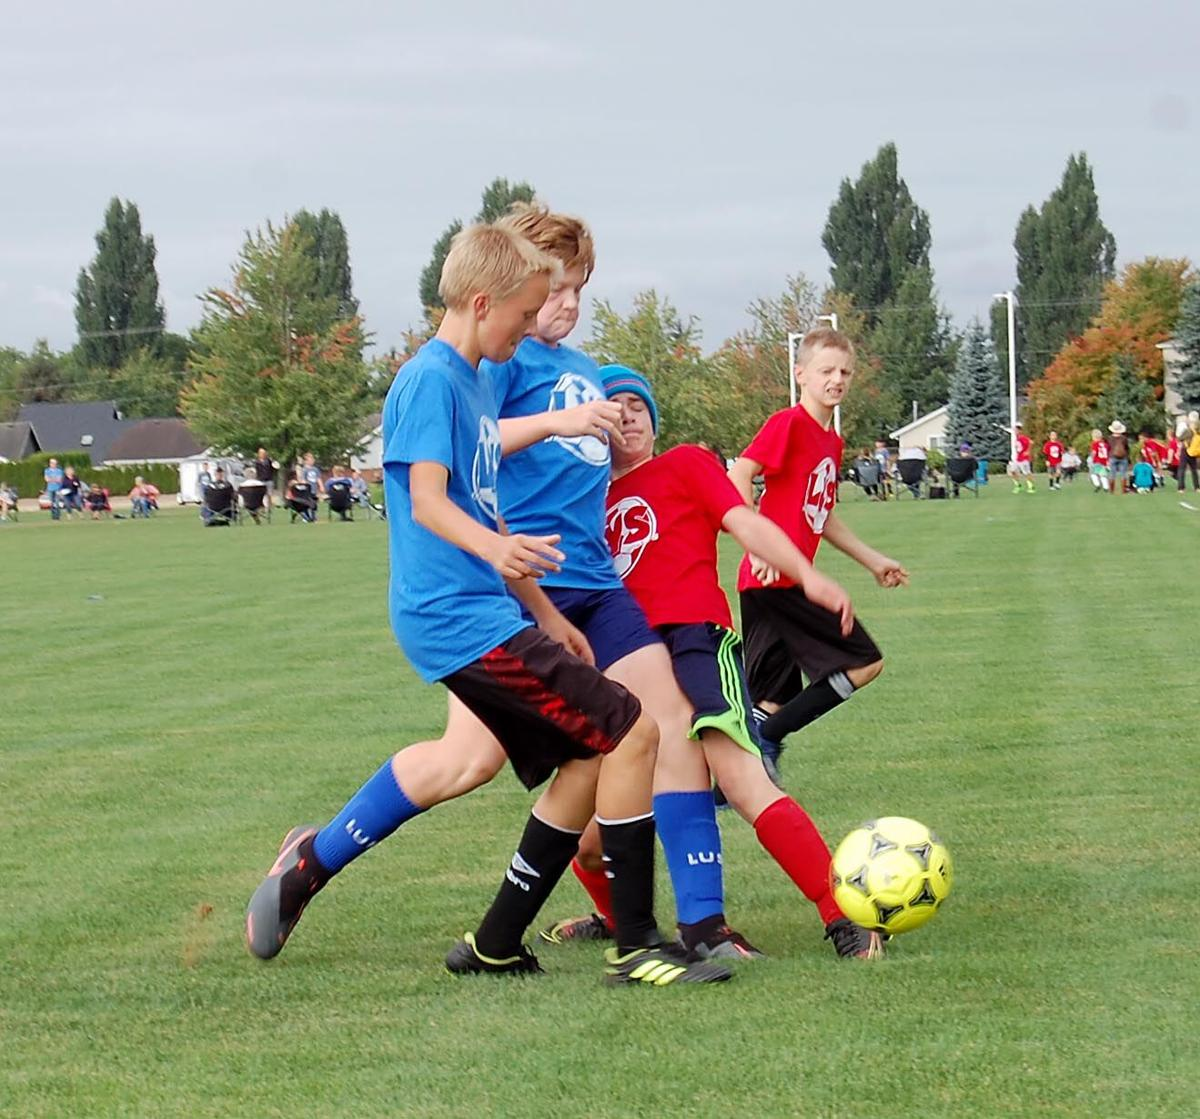 youthsoccer2